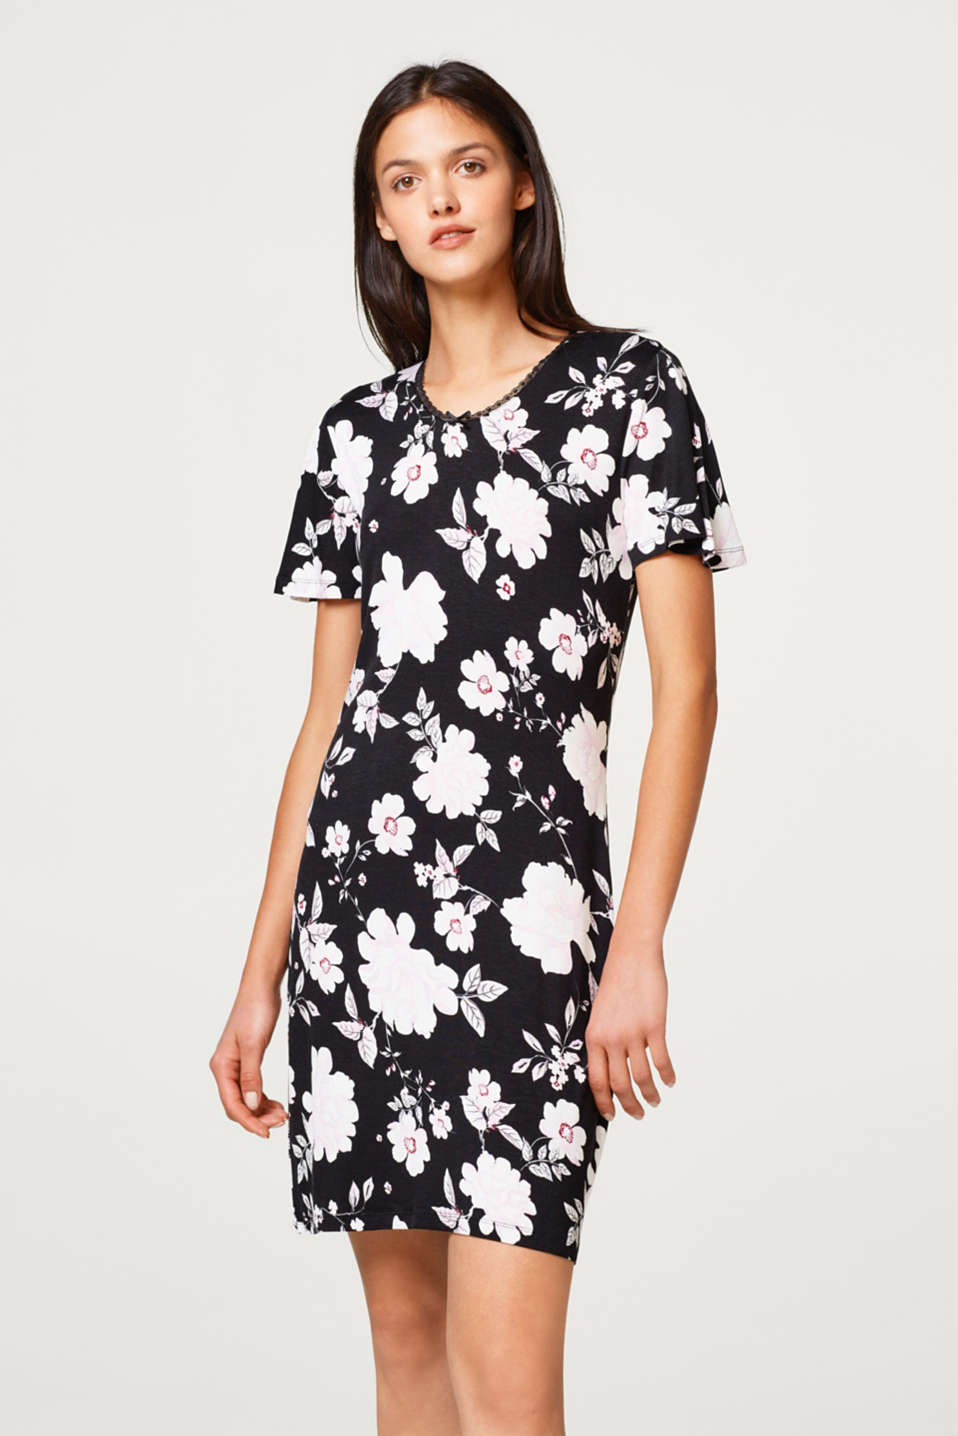 Esprit - Jersey nightshirt with a floral print